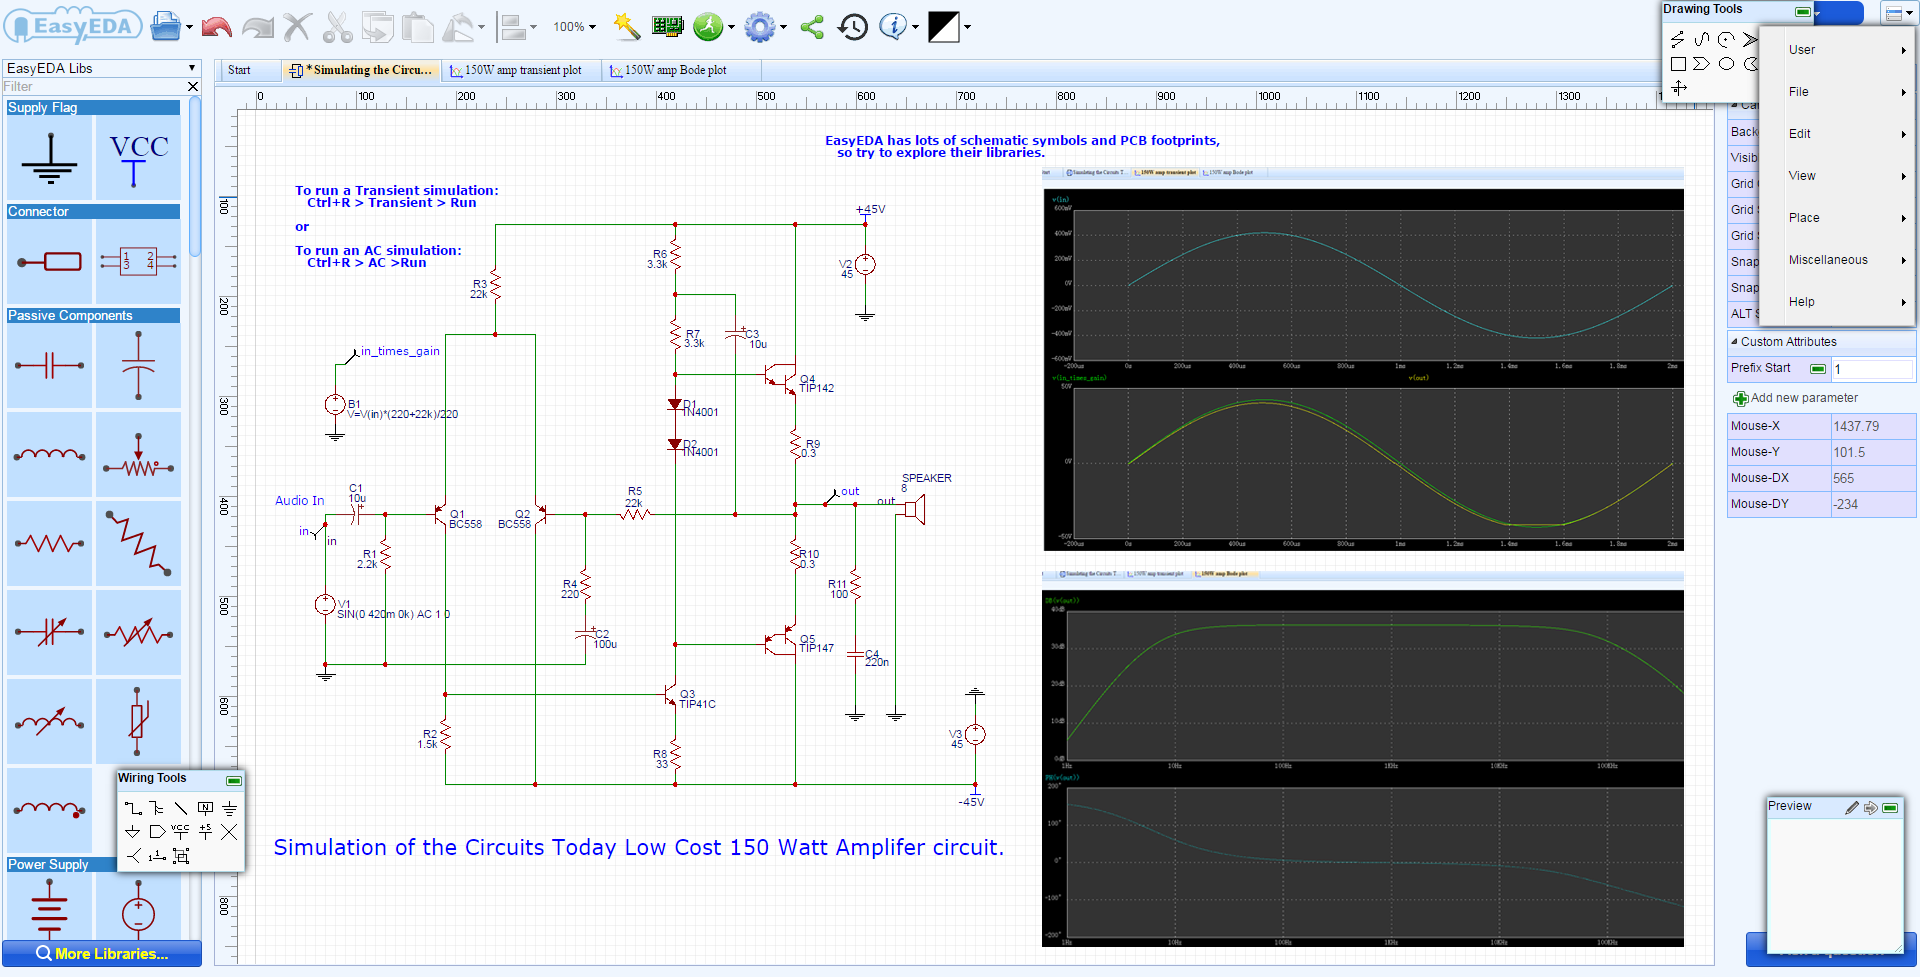 Circuit Simulation Software for Mac - EasyEDA